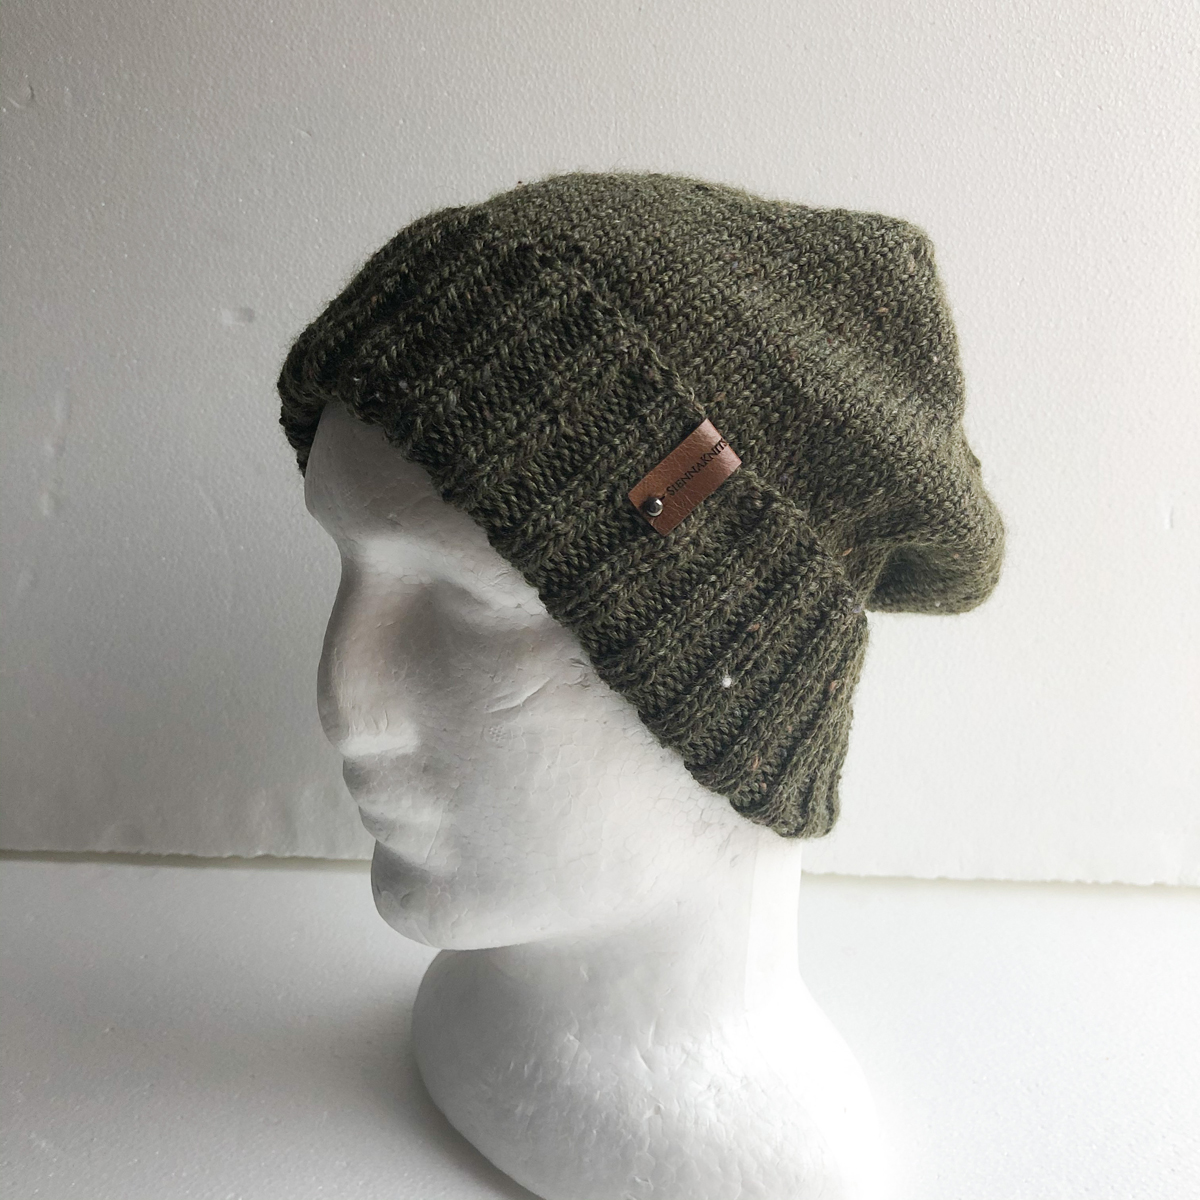 Olive Green Speckled Wool Knit Men Beanie With a Foldable Brim by SiennaKnits SiennaKnits (Fitzroy)